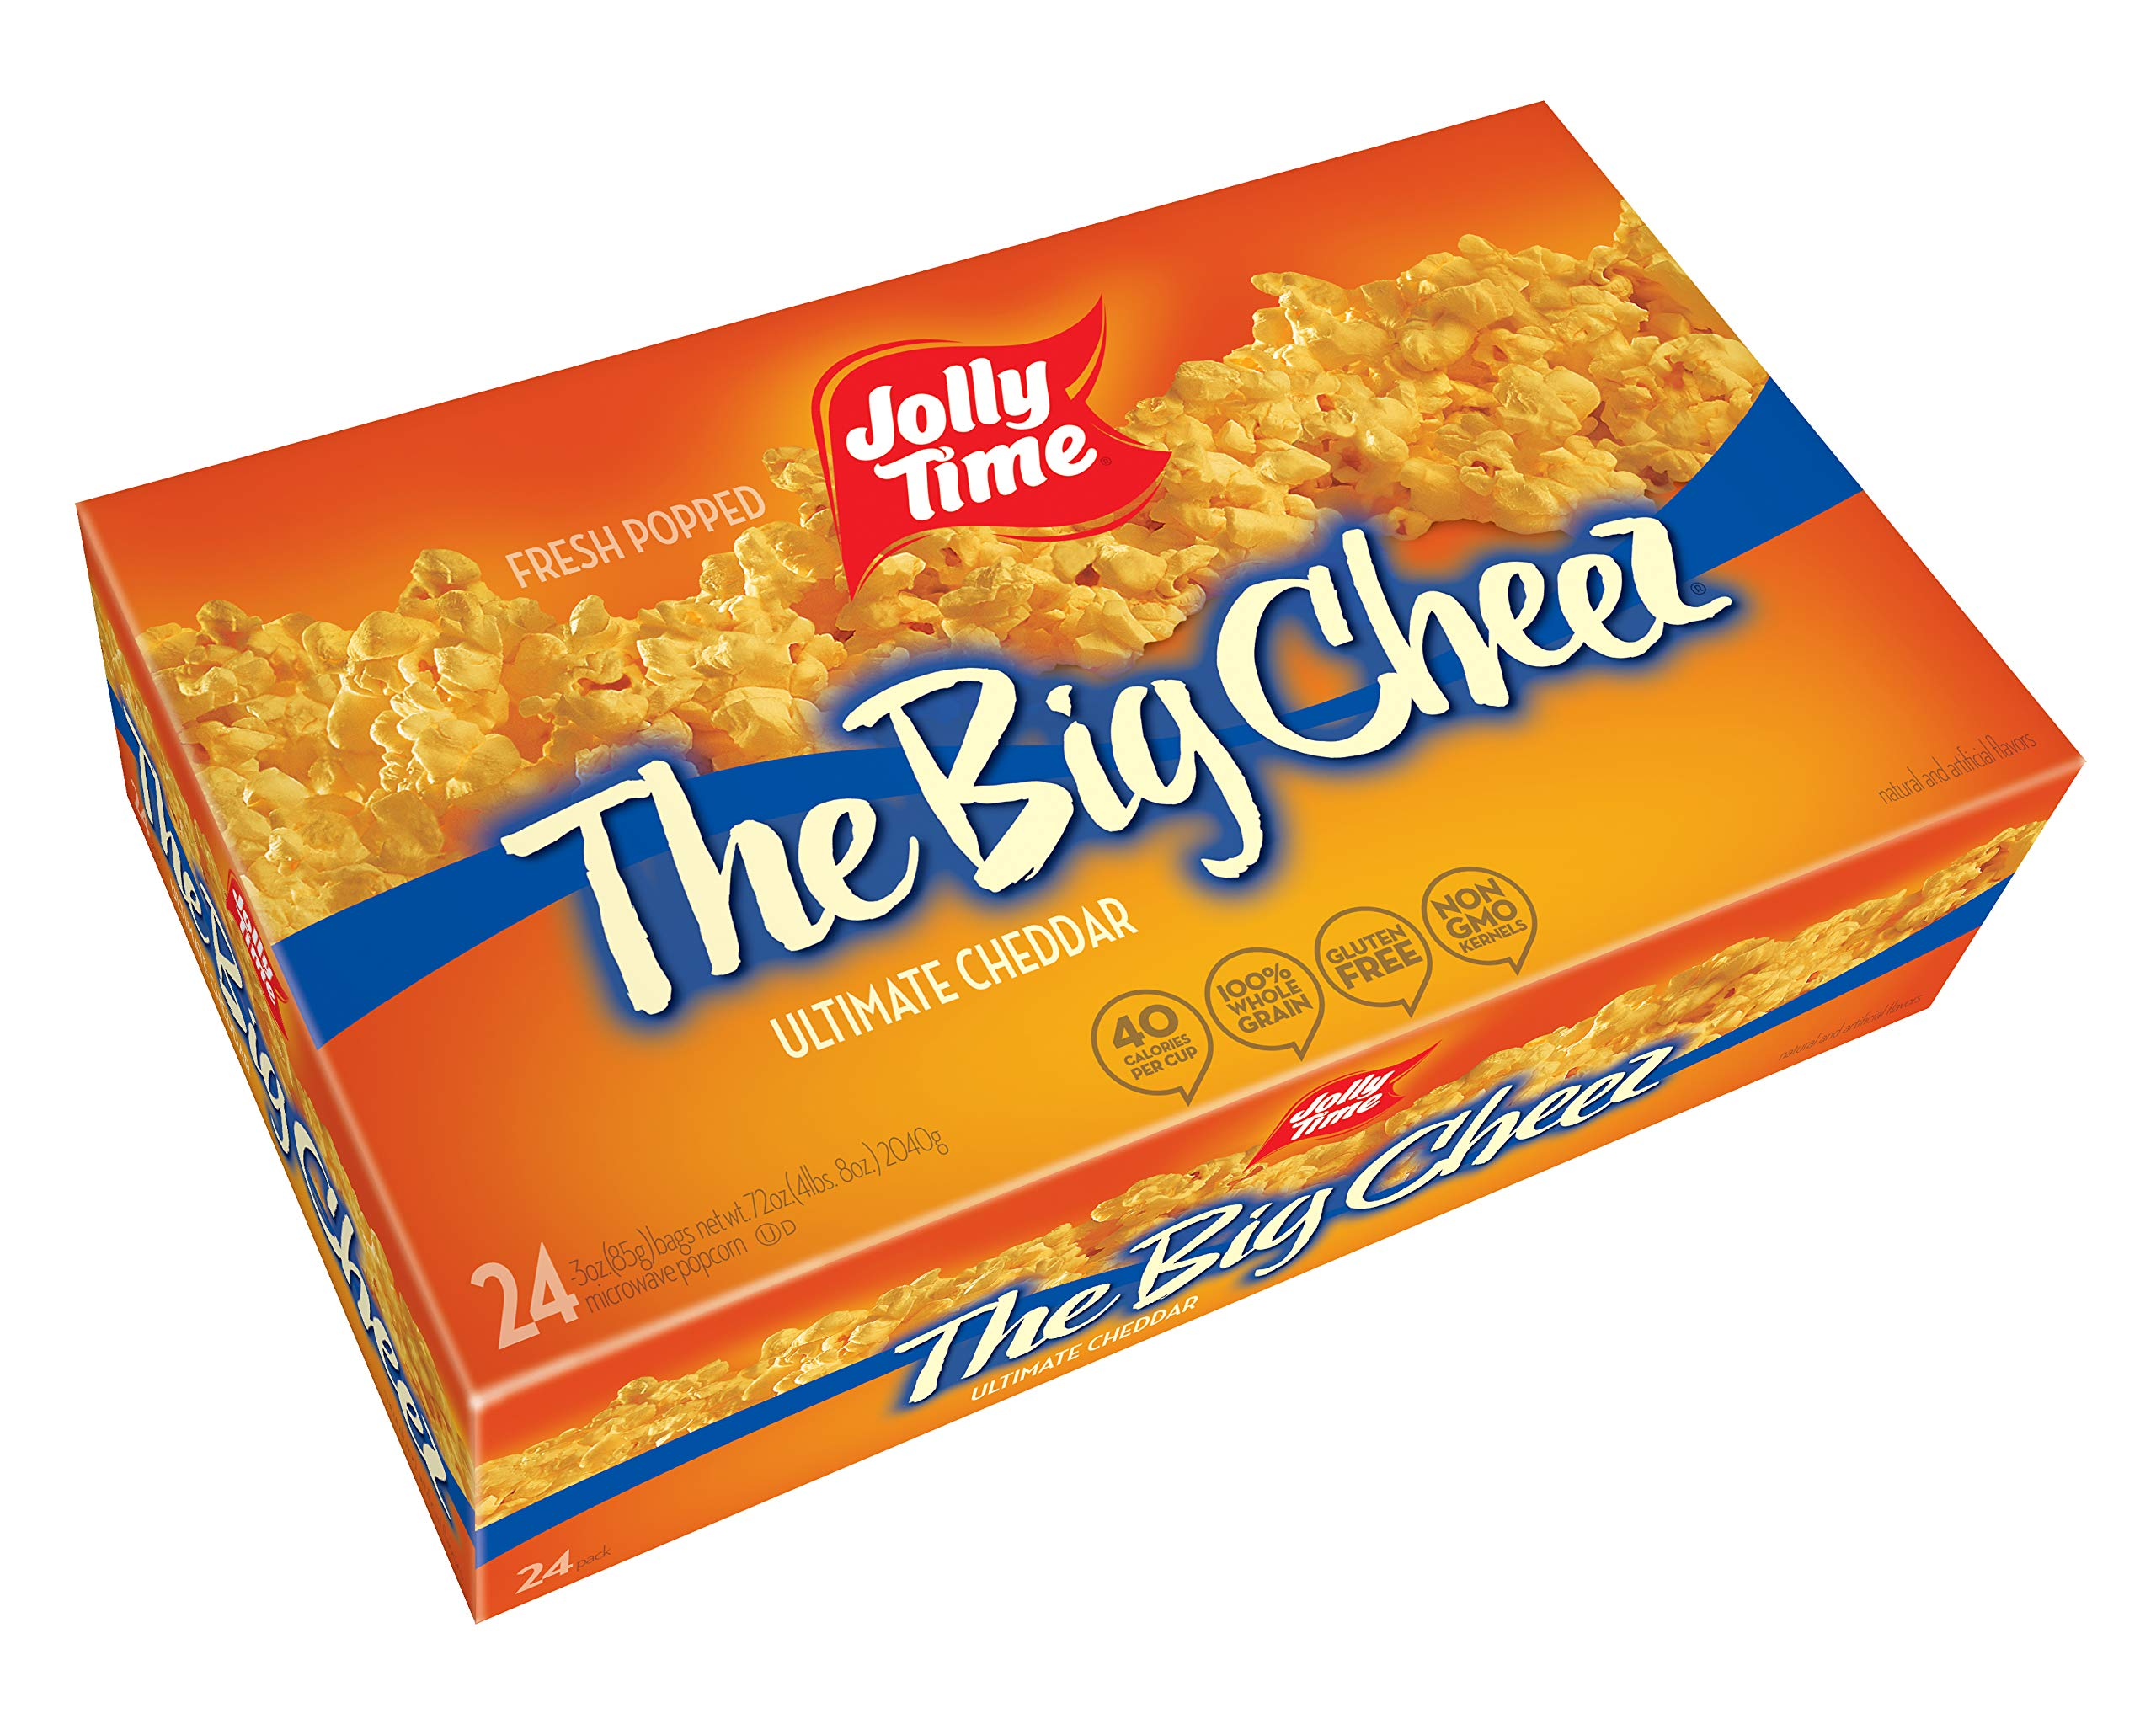 Jolly Time The Big Cheez Gourmet Cheddar Cheese Microwave Popcorn, Bulk 24Count Box by Jolly Time